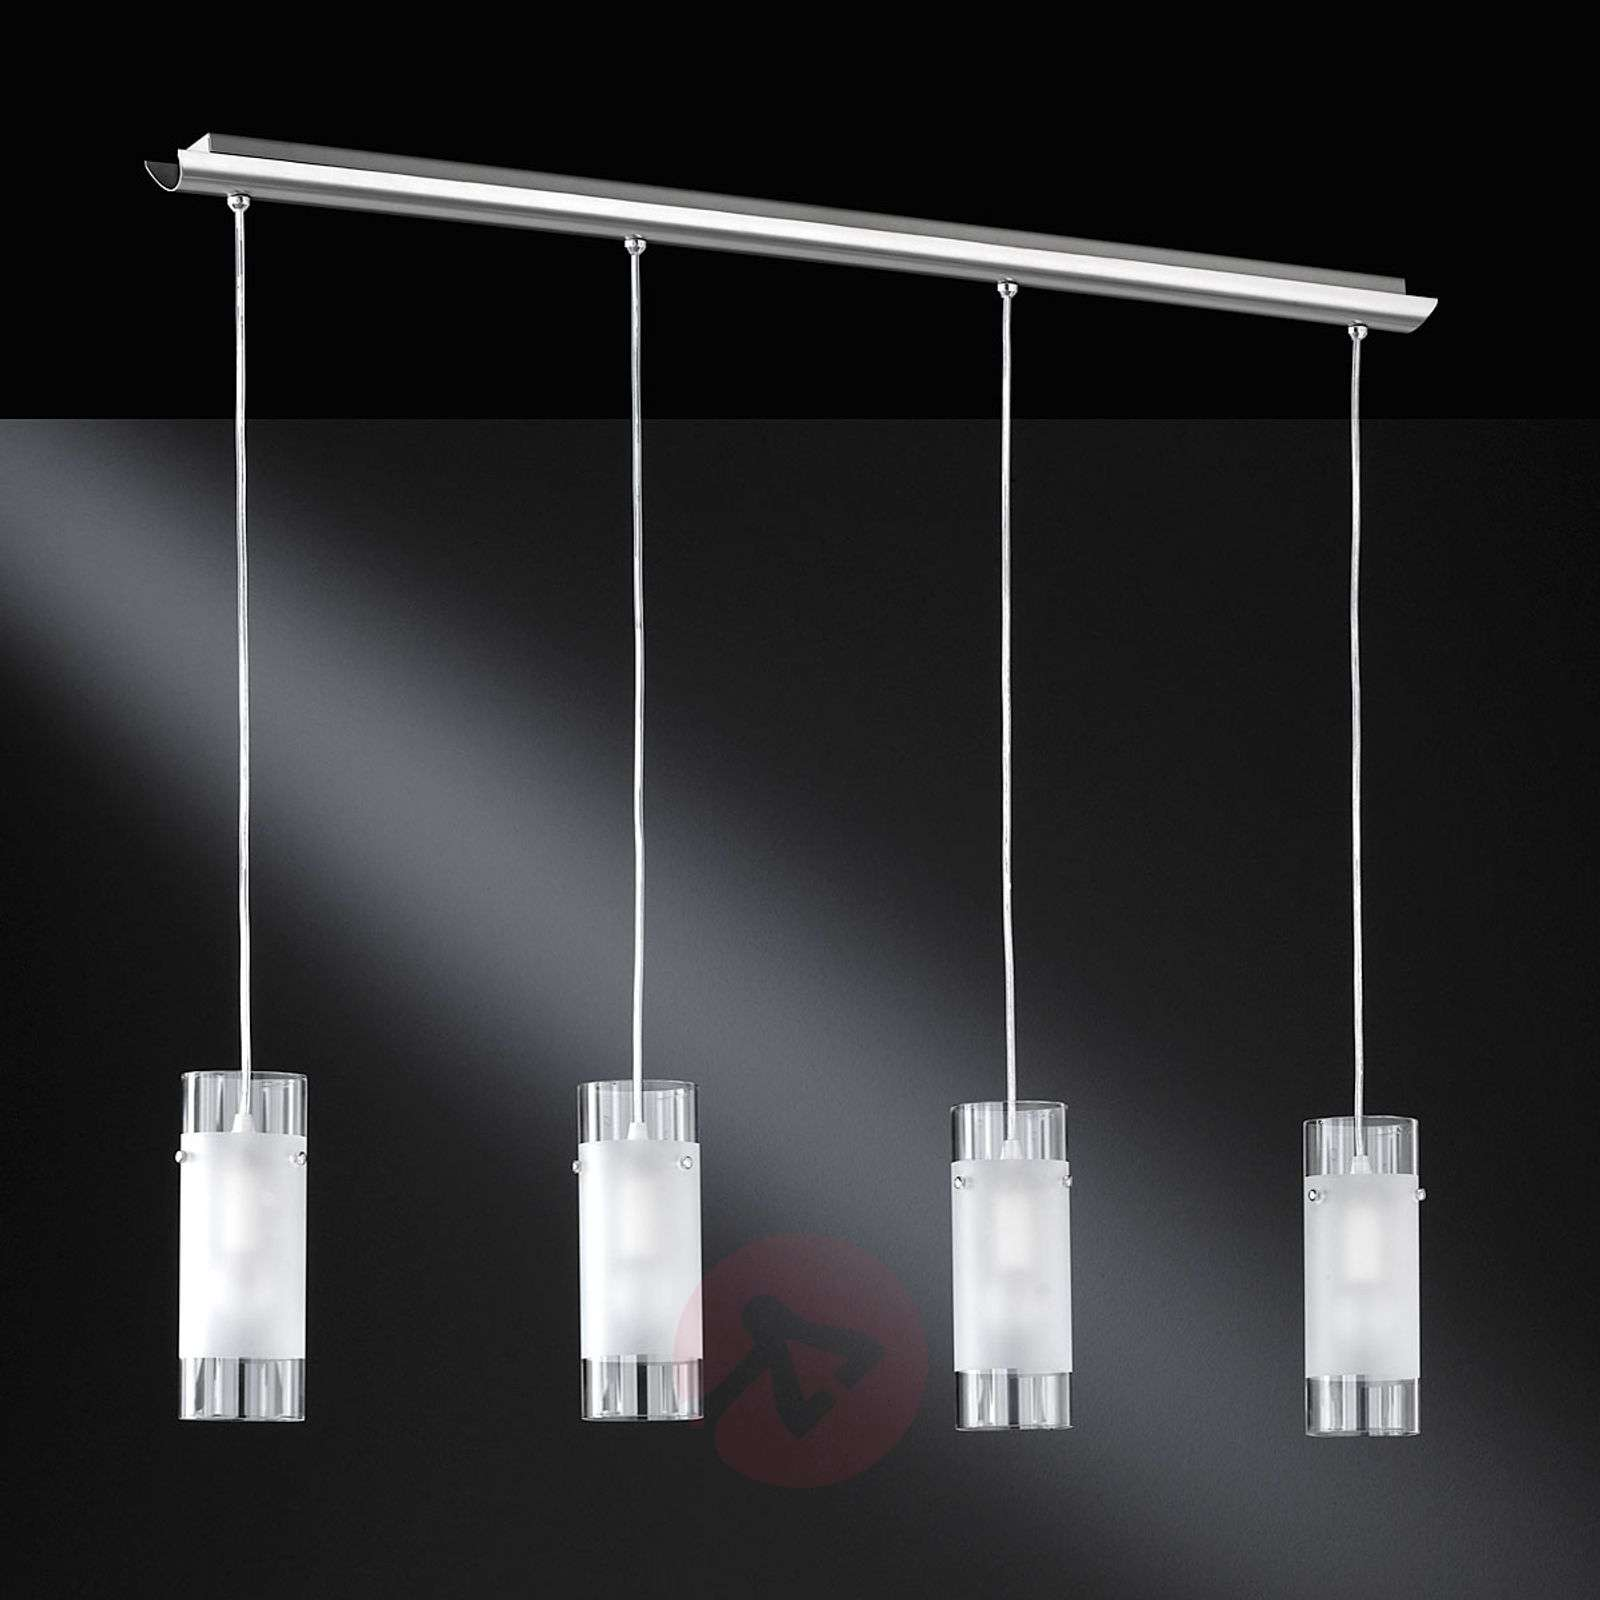 Max hanging light with glass lampshades, four-bulb-9651492-01